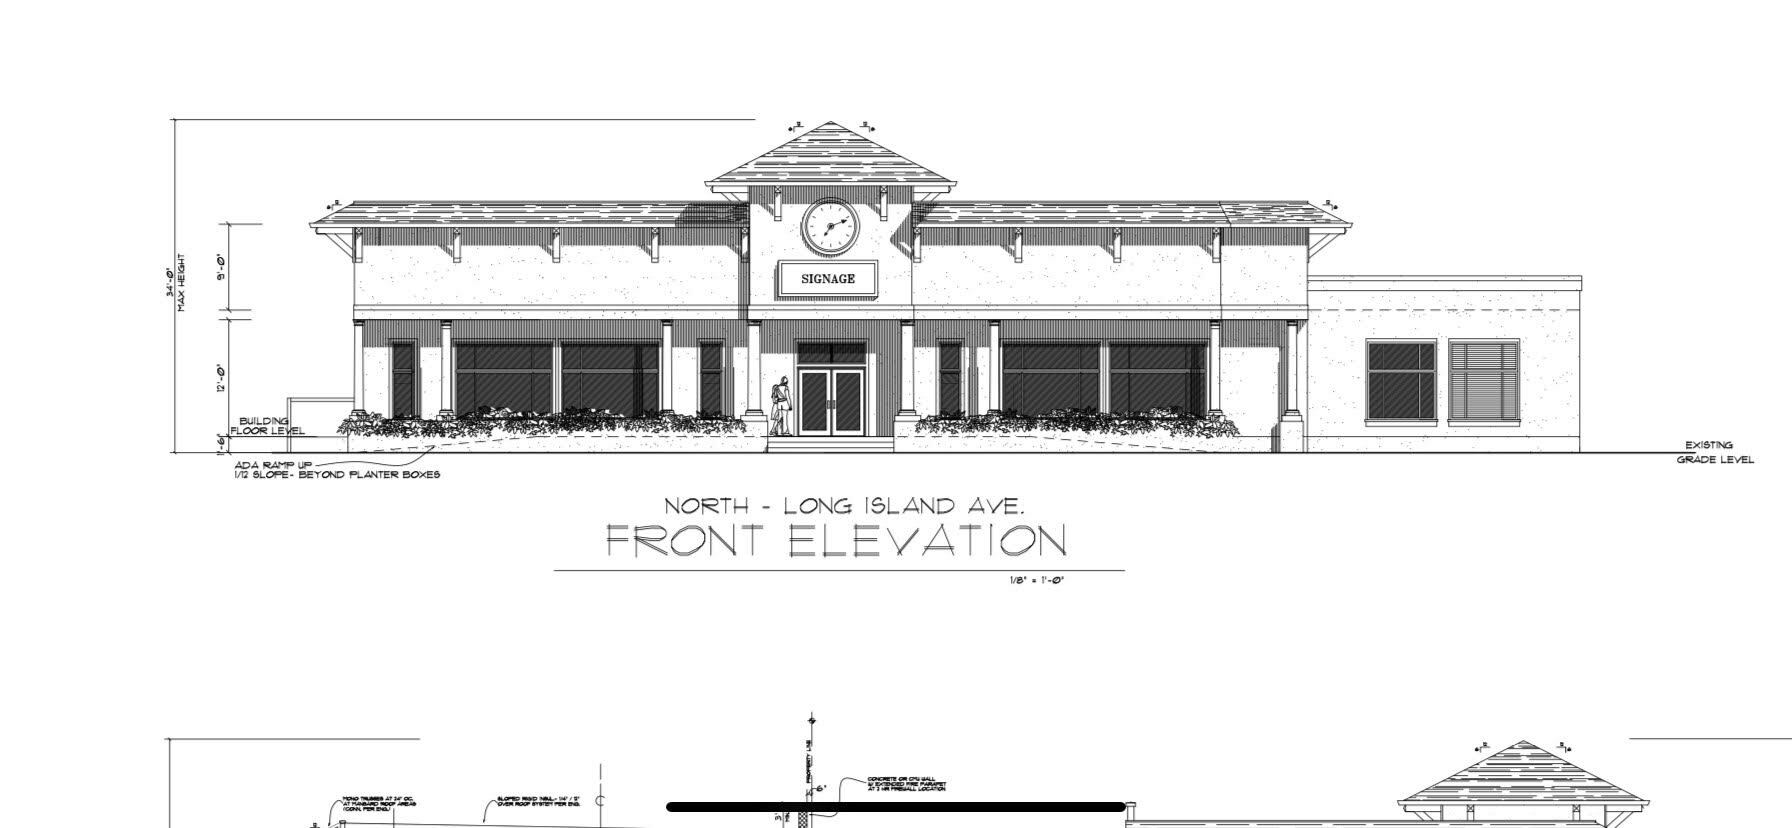 A rendering of a building proposed by David Schiavoni on Long Island Avenue in Sag Harbor. COURTESY DAVID SCHIAVONI